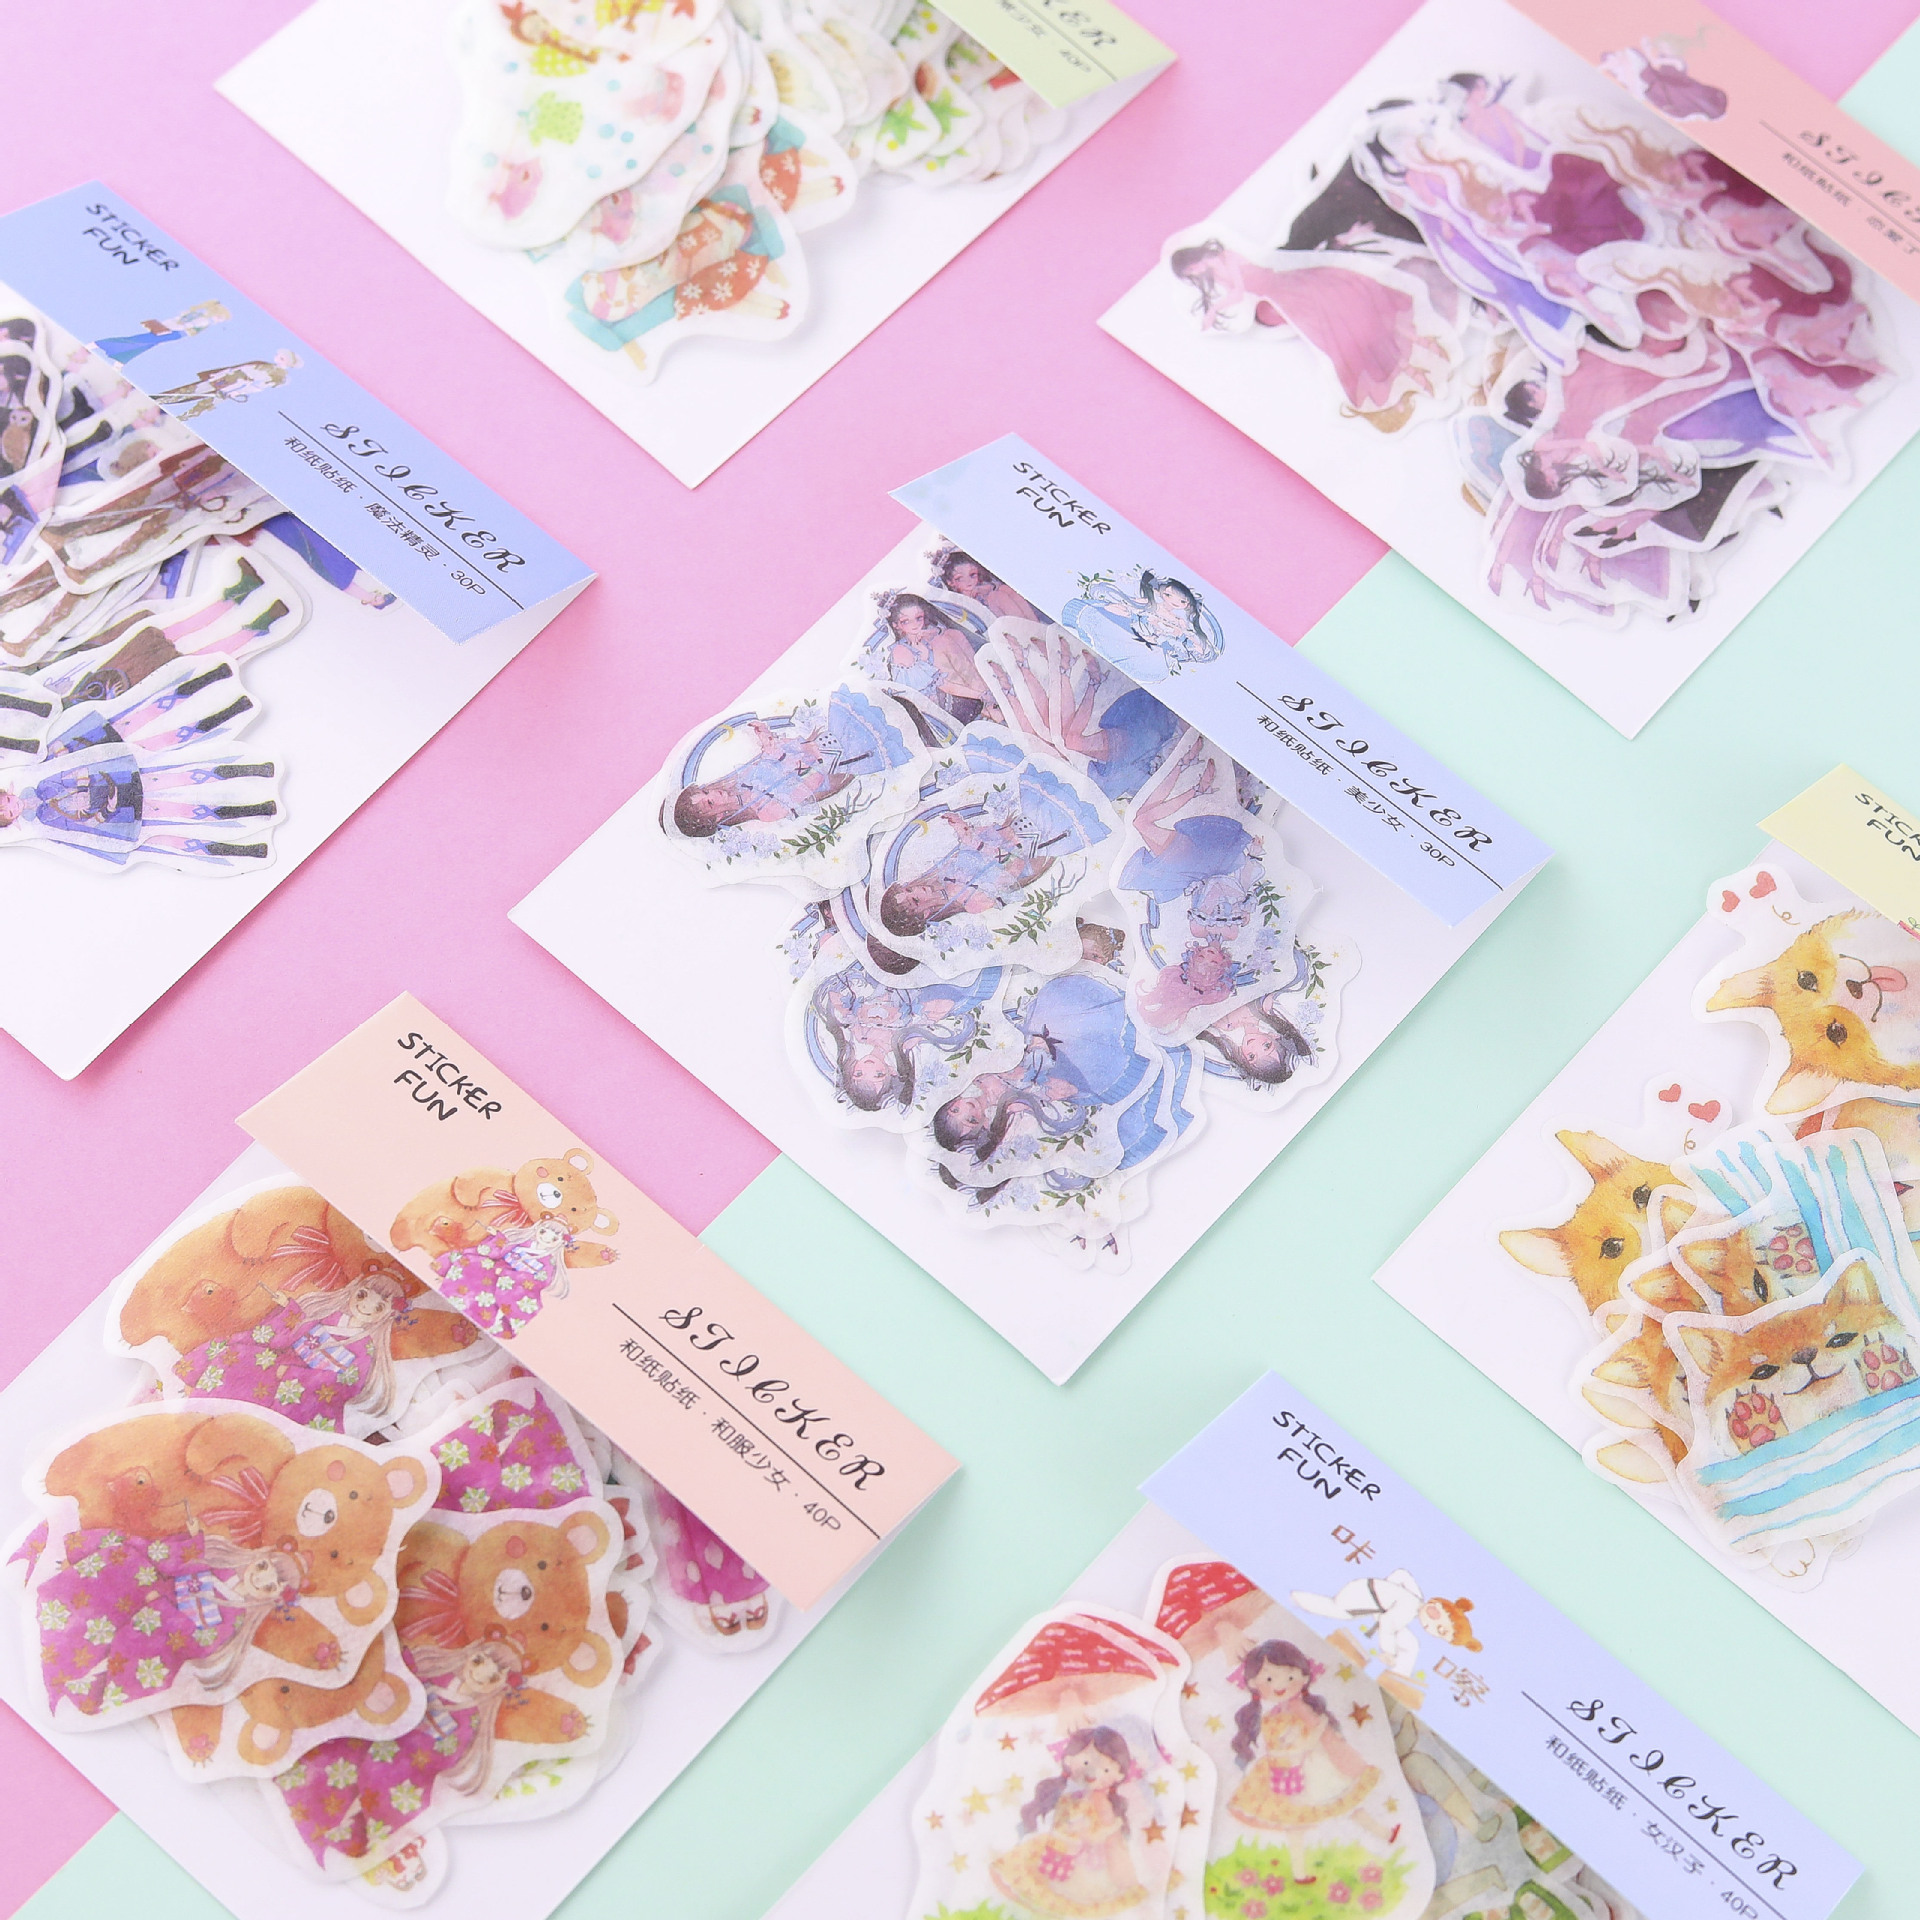 30pcs/pack Cute Fairy Sticker Decoration DIY Album Diary Scrapbooking Label Sticker Kawaii Stationery